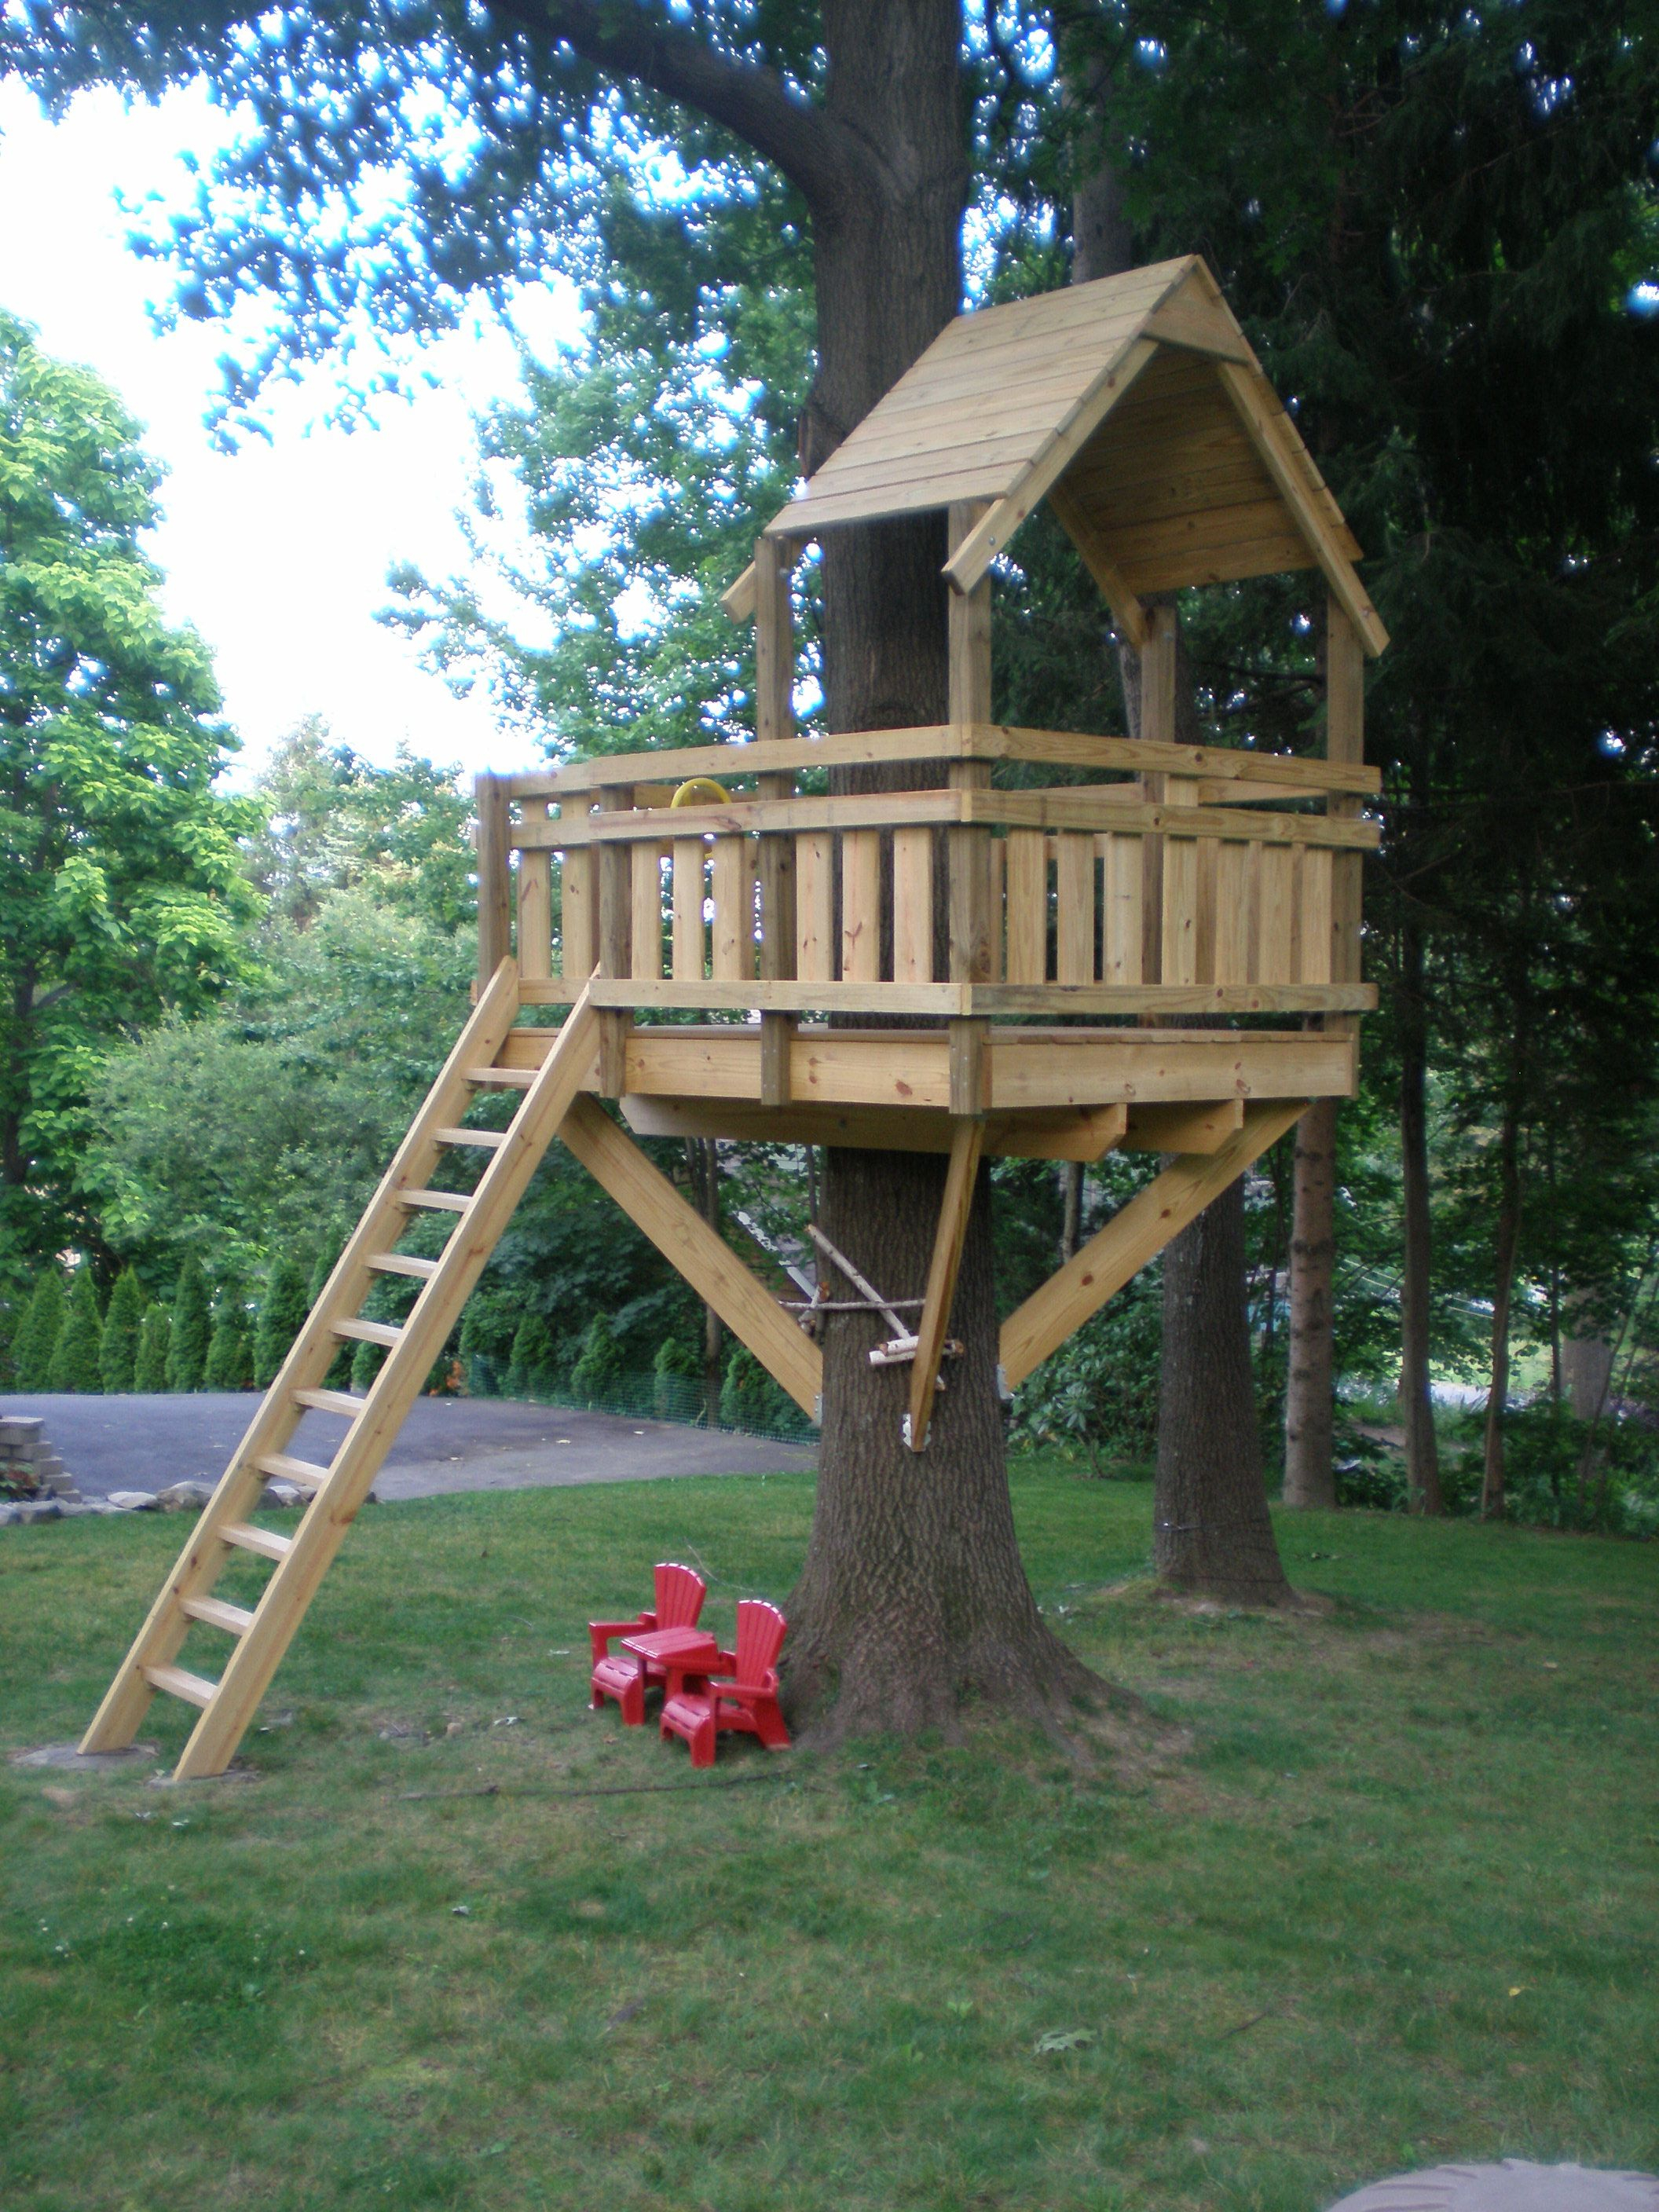 Tree Fort Ladder Gate Roof Finale Fort Plans Tree House for 10 Genius Concepts of How to Upgrade Backyard Fort Ideas